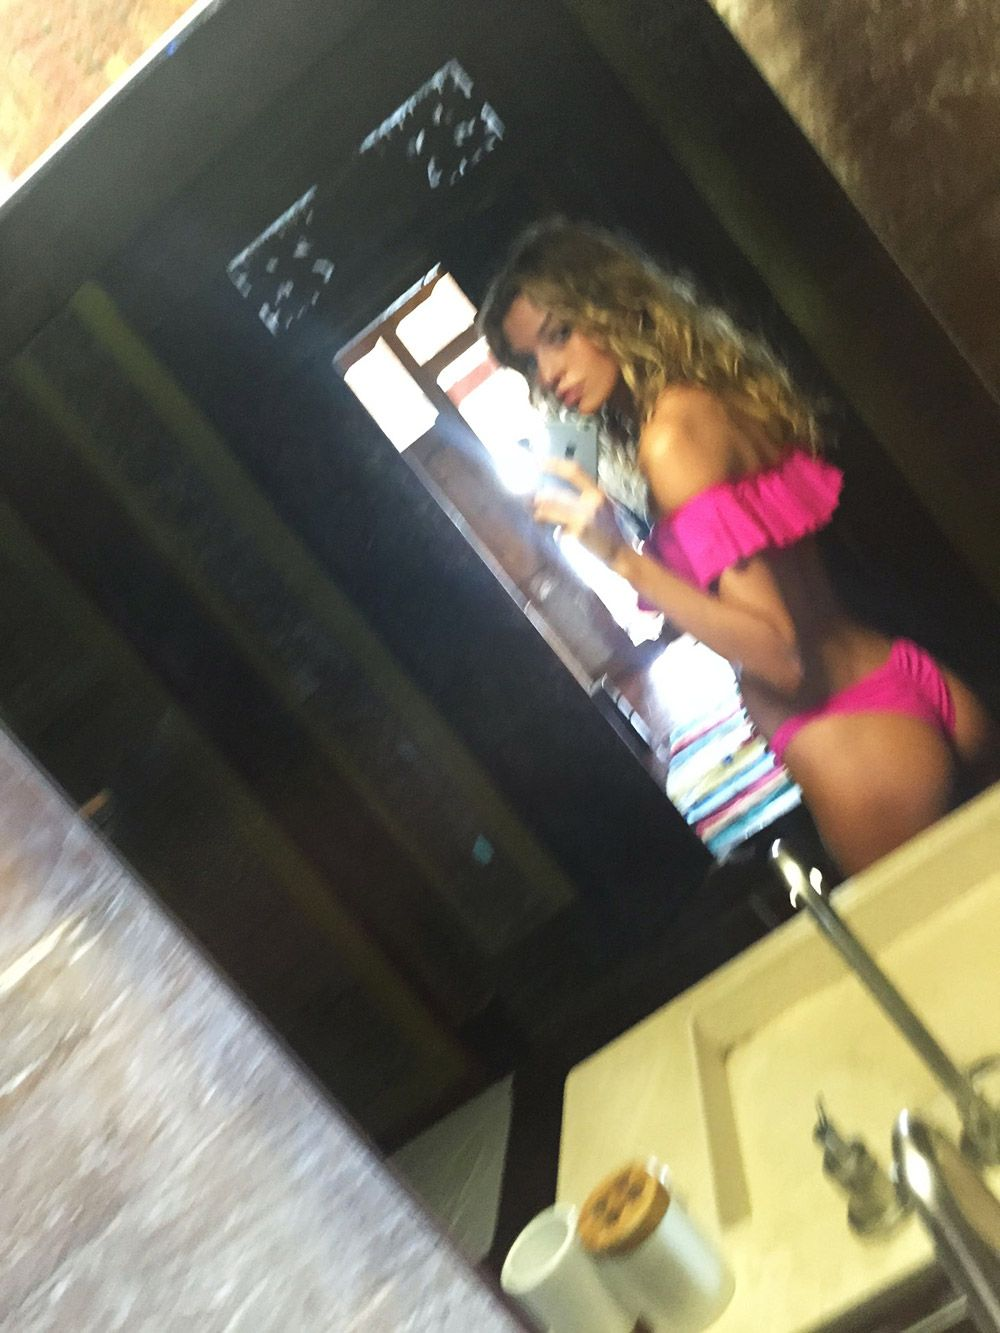 Stella Maxwell Nude LEAKED The Fappening & Sexy – Part 1 (157 Photos & Possible Sex Tape Porn Video)